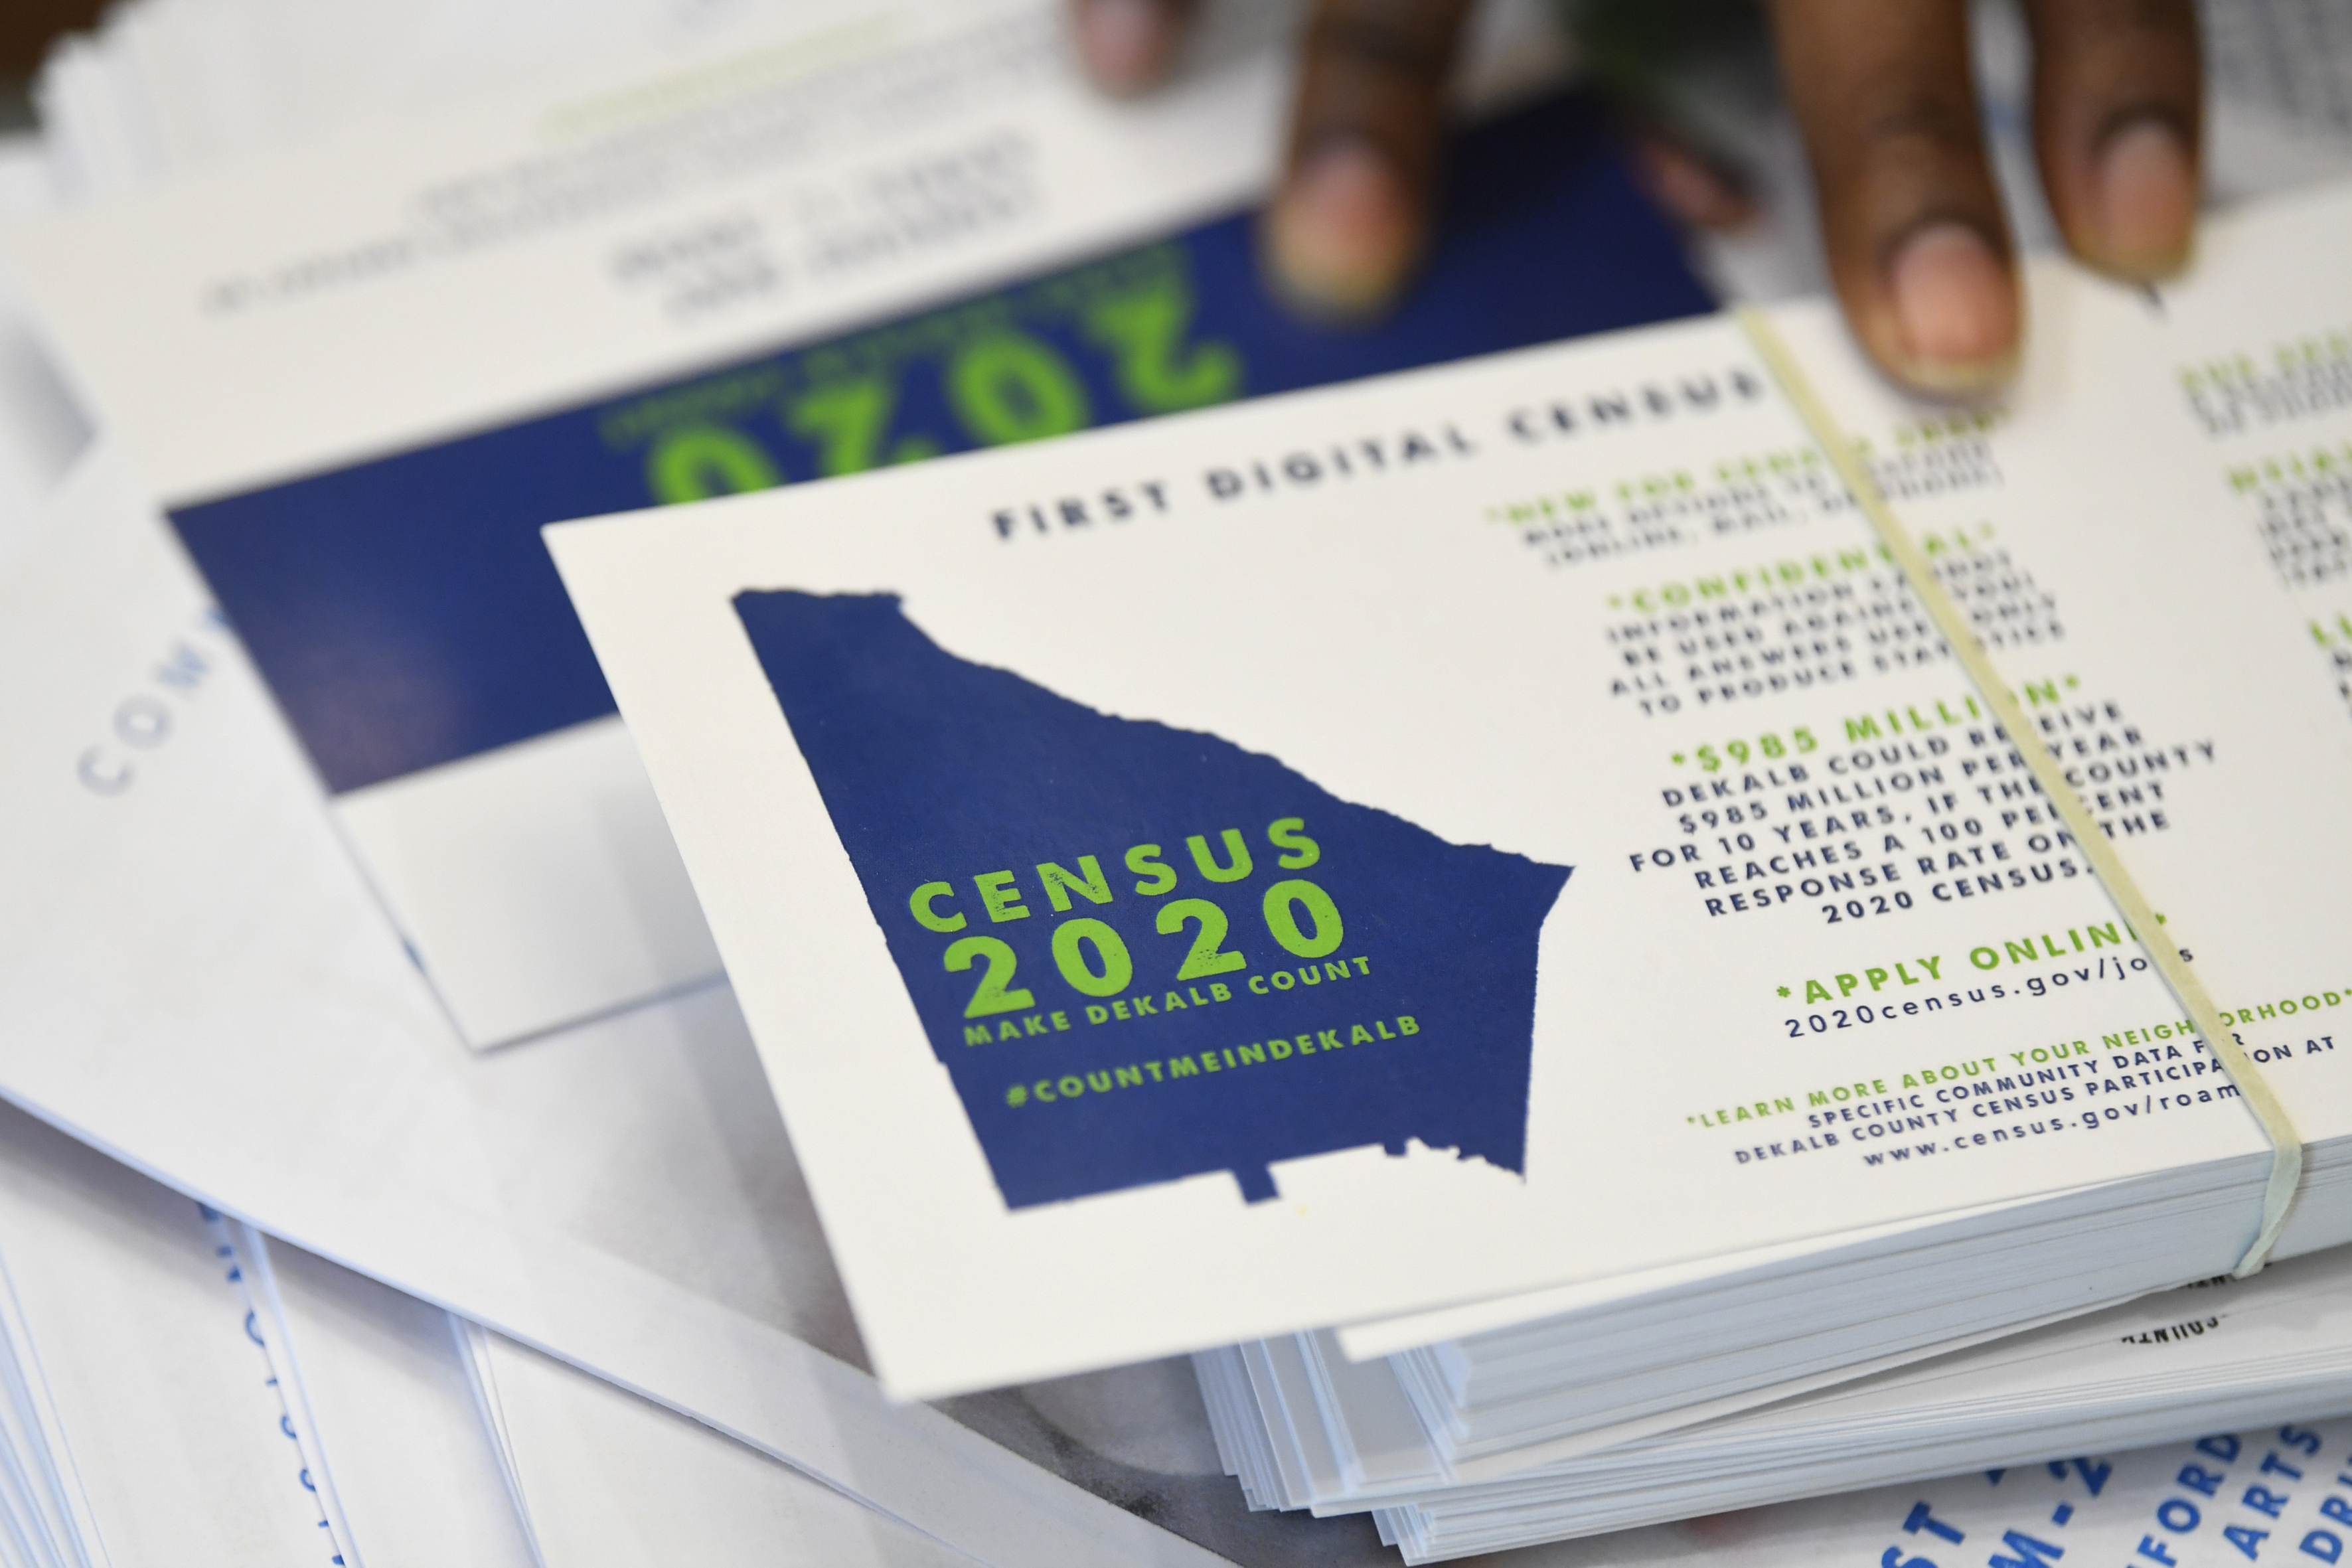 A worker gets ready to pass out instructions on how to fill out the 2020 census during a town hall meeting in Lithonia, Ga on Aug. 13, 2019.